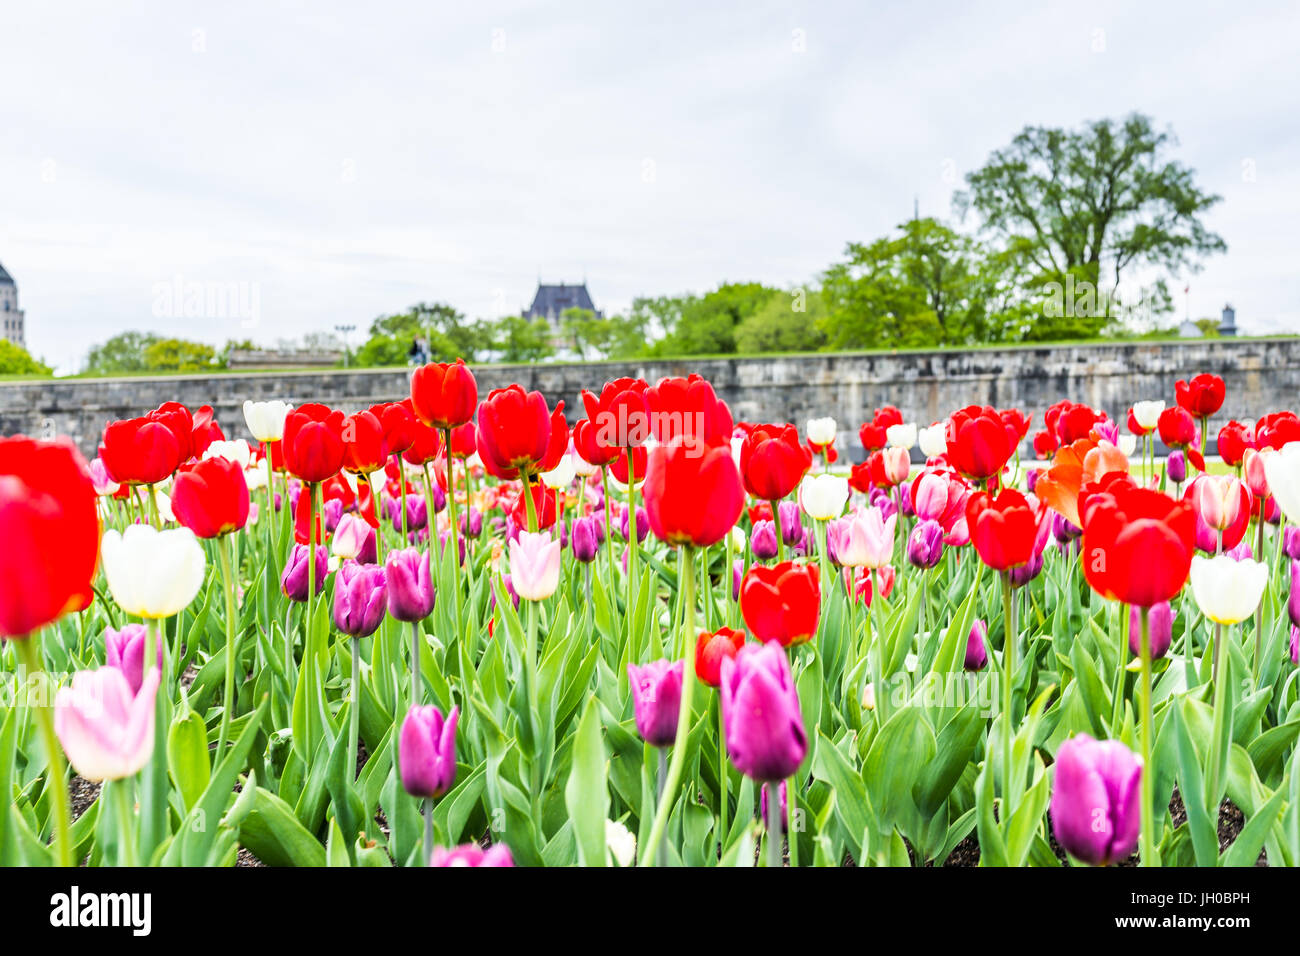 Quebec City, Canada - May 29, 2017: Macro closeup of purple and red tulips in summer by green grass fields plains - Stock Image